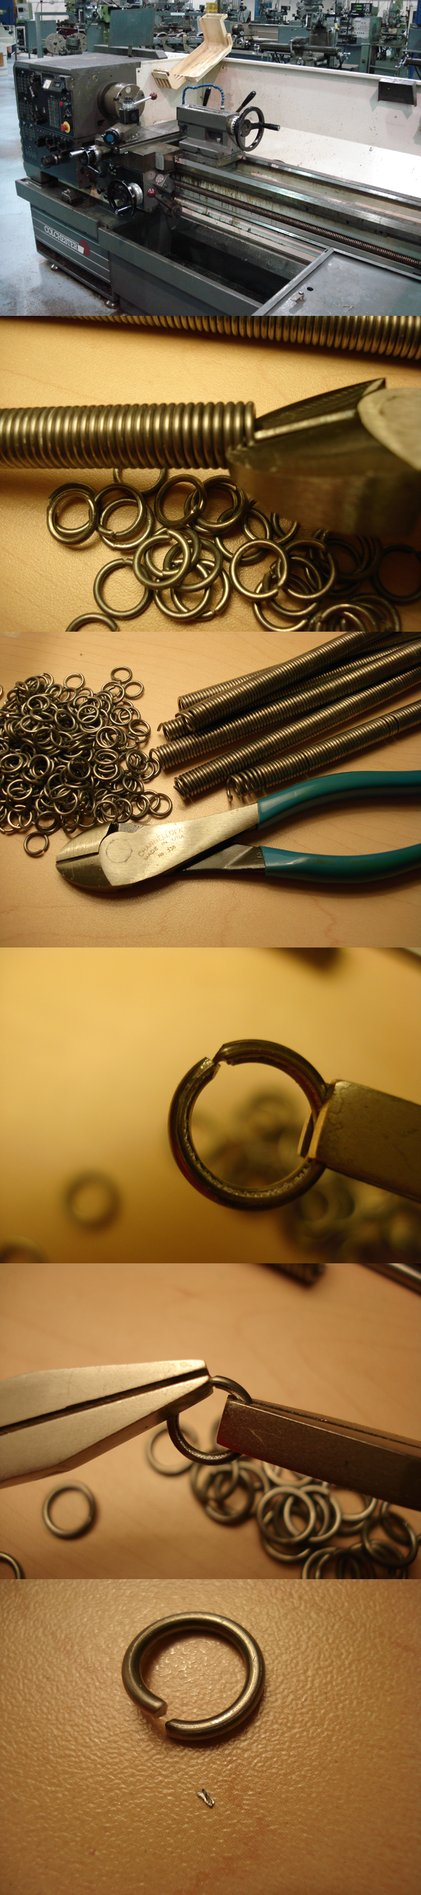 How to Make Chainmail - Part 2 by DaveLuck on deviantART